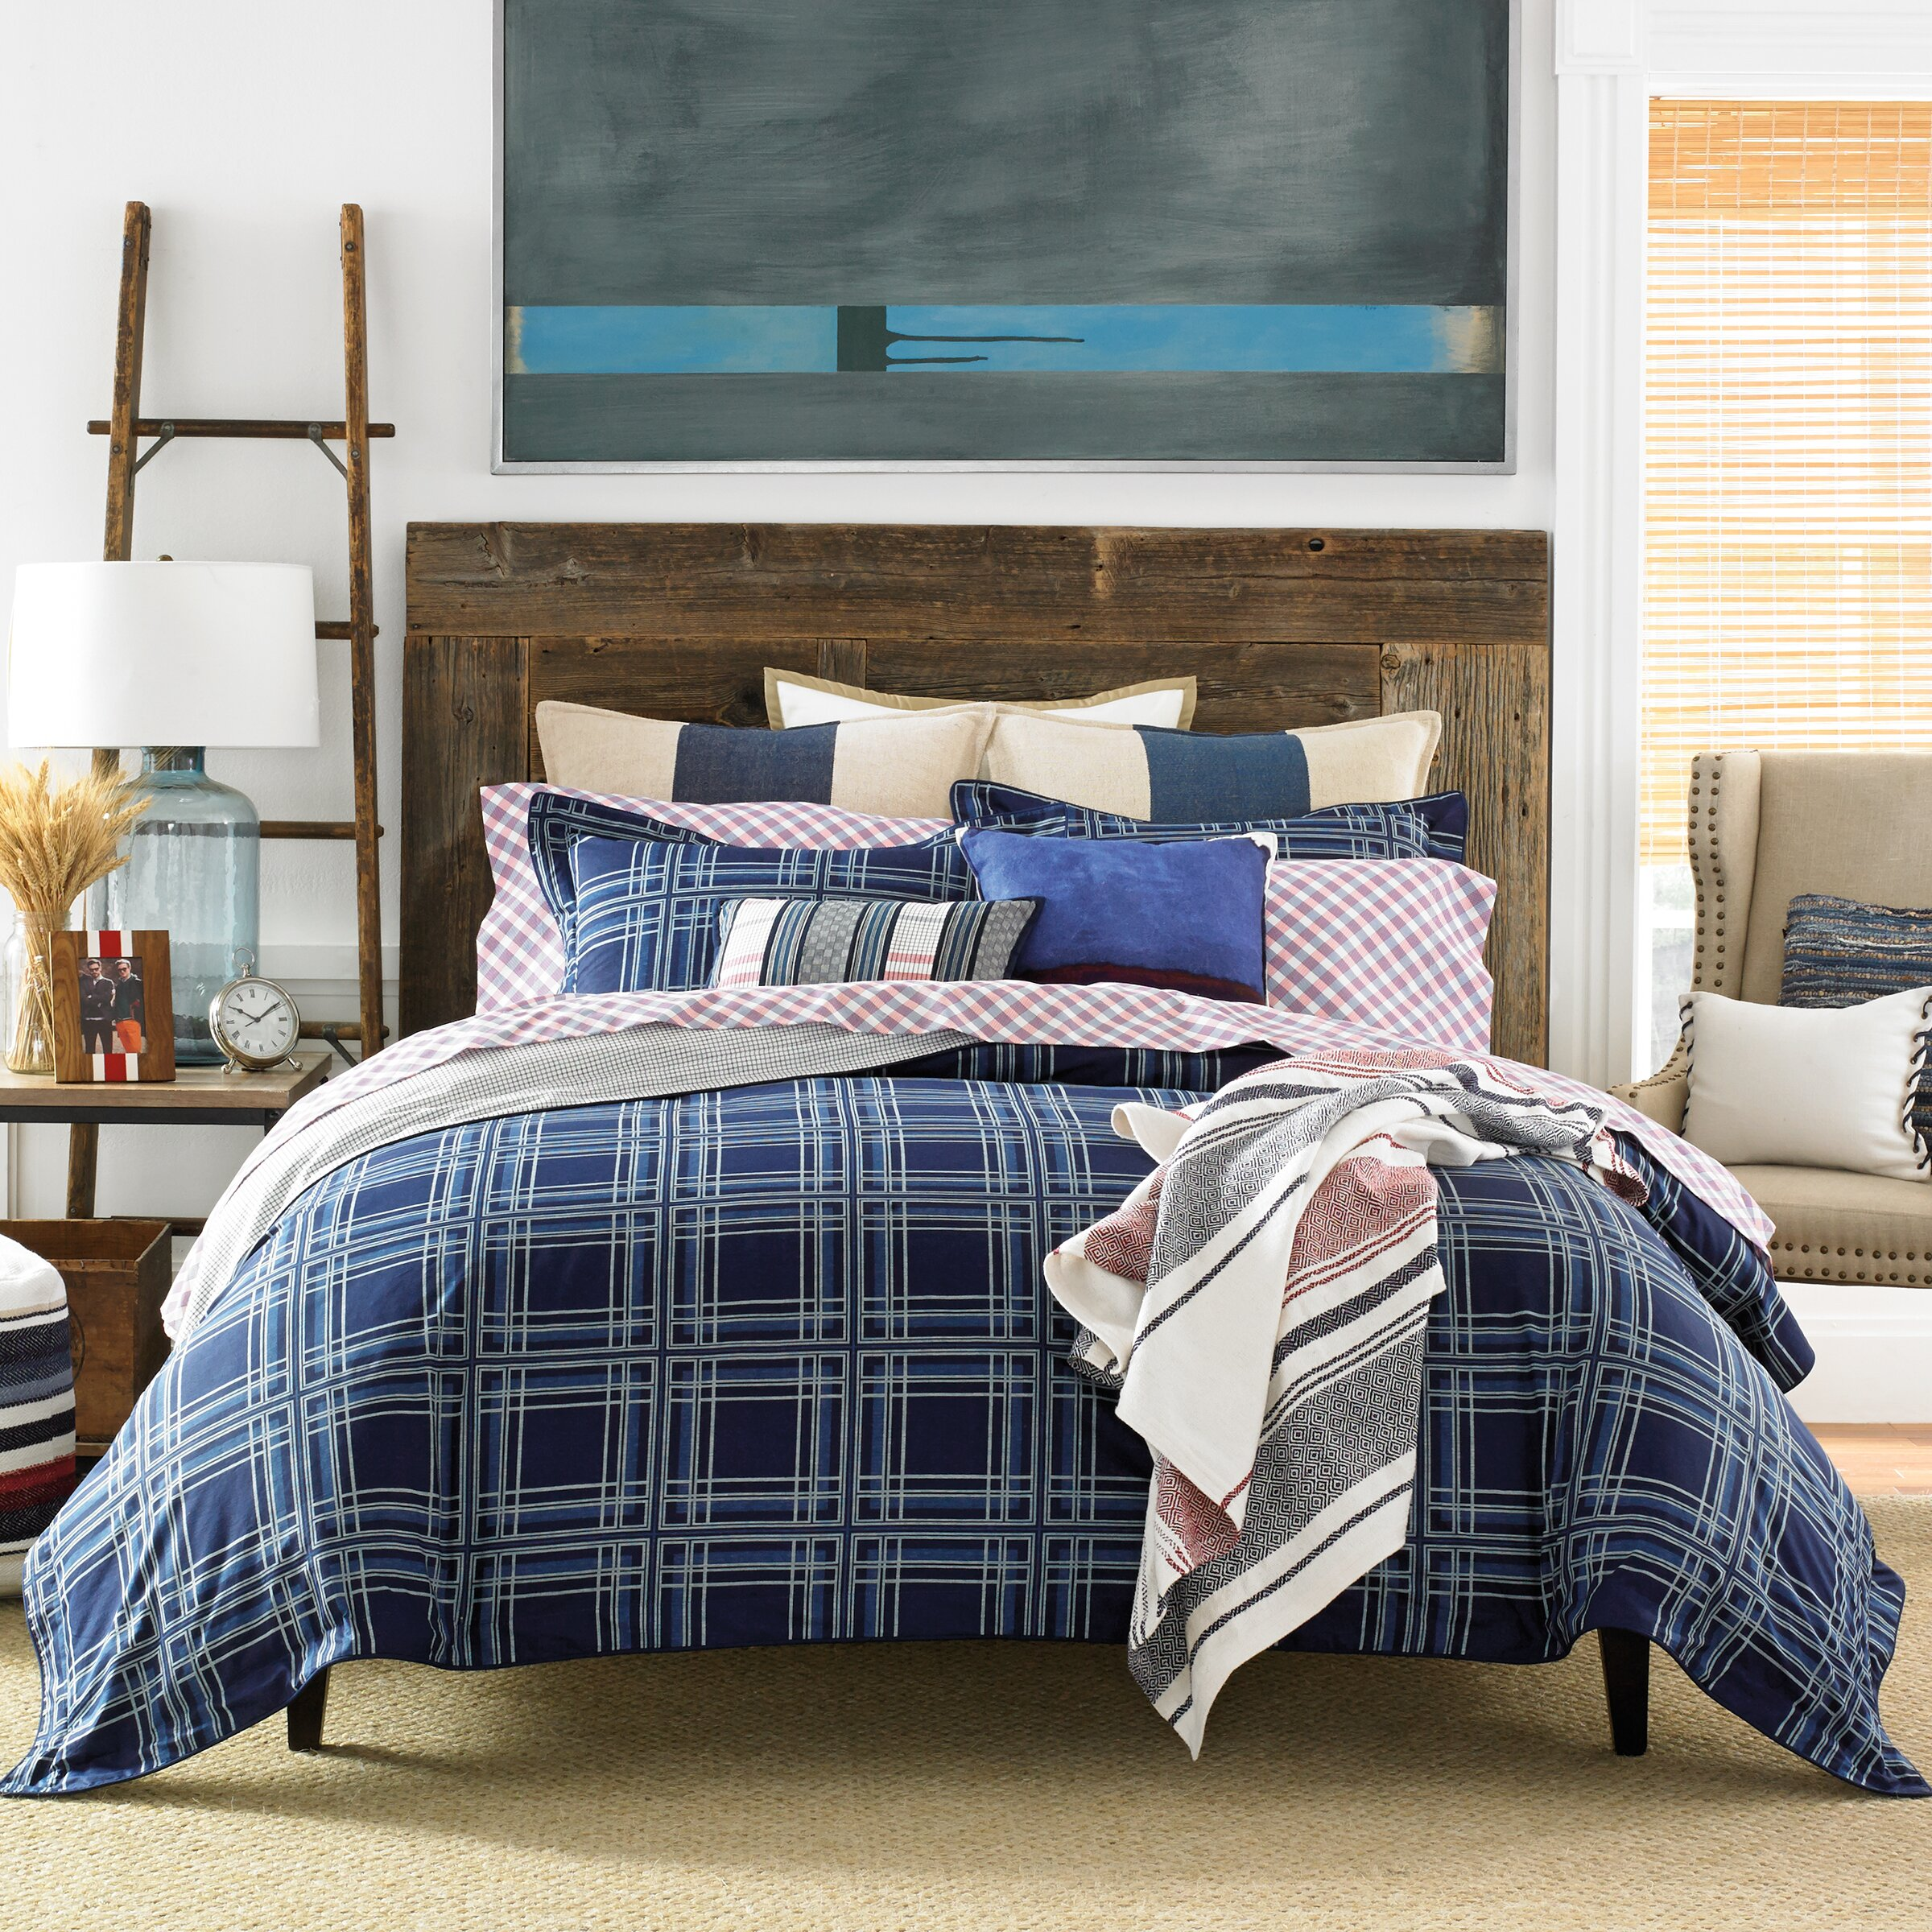 Tommy Hilfiger Comforter Set Reviews Wayfair